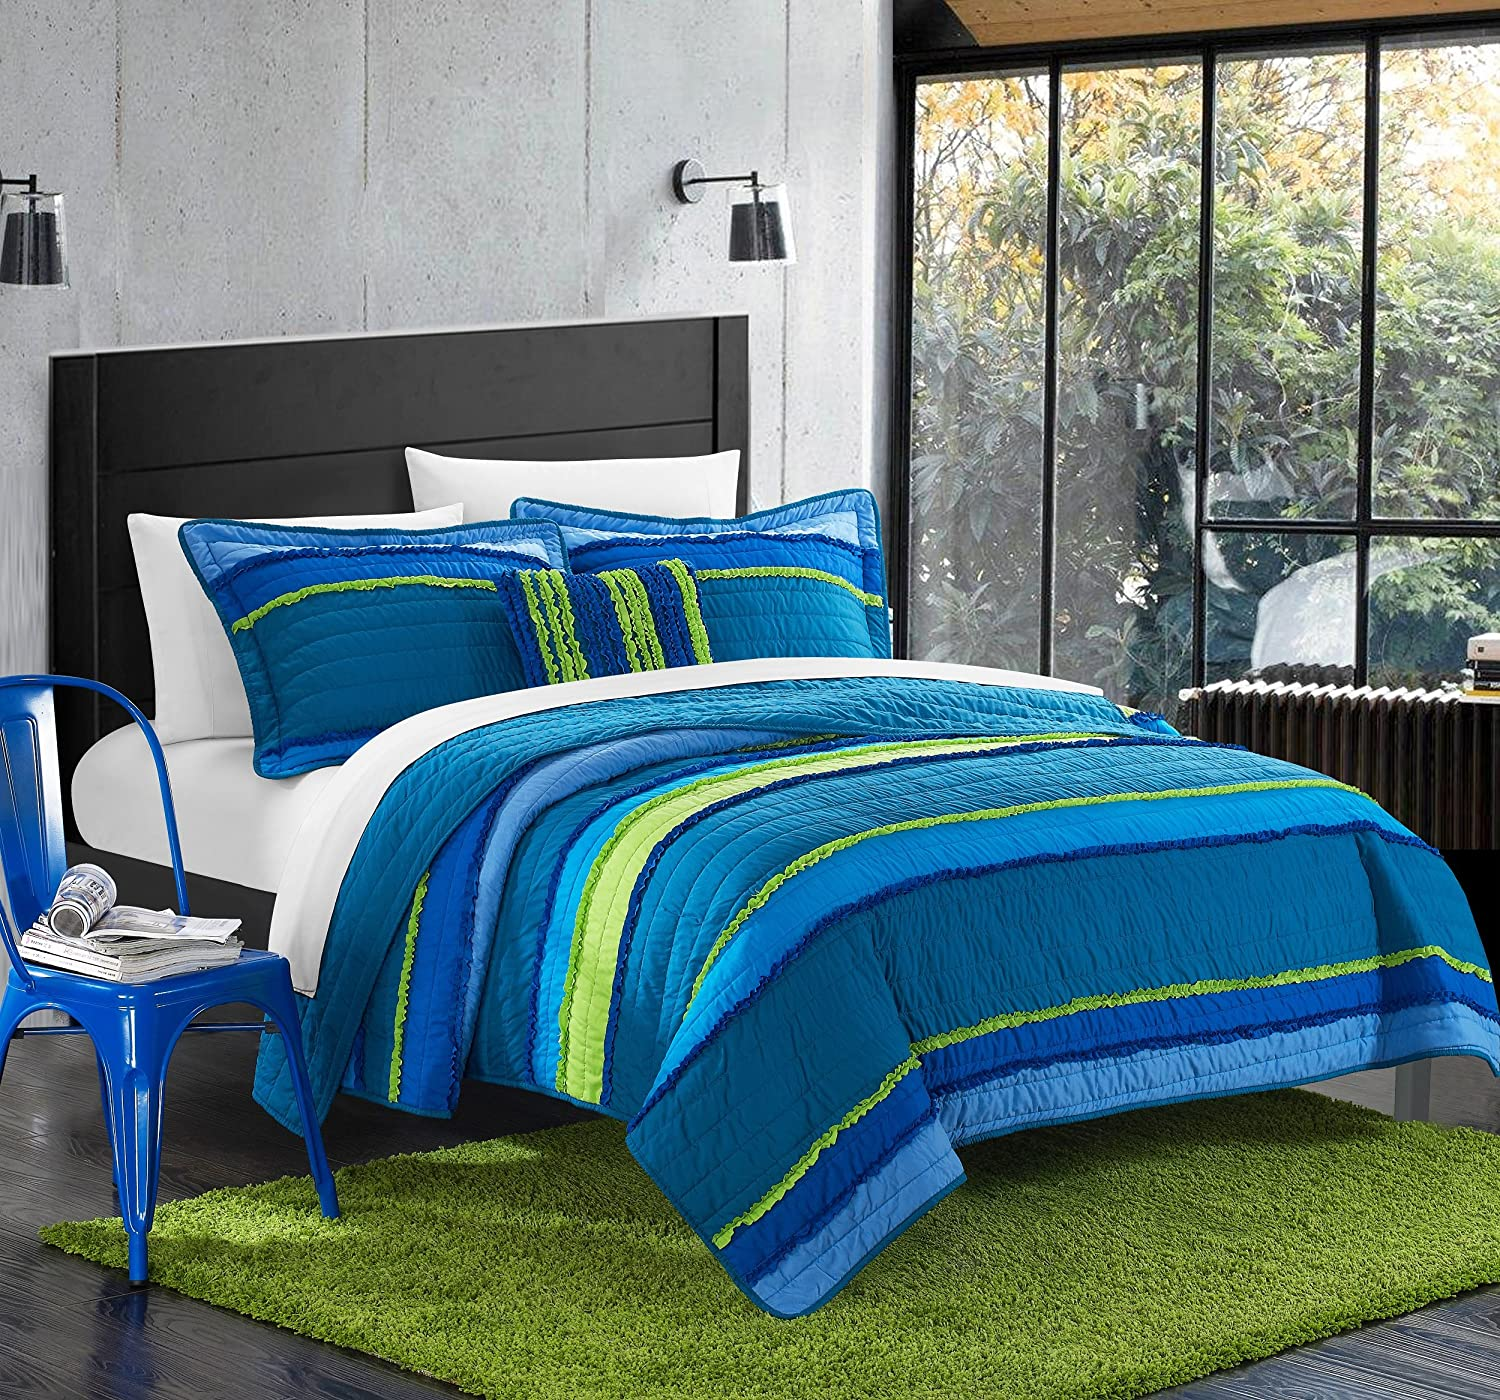 Chic Home 3 Piece Italica Ruffled & Rouched Details Pieced Multi Colored Global Design Quilt Set, Twin, Blue